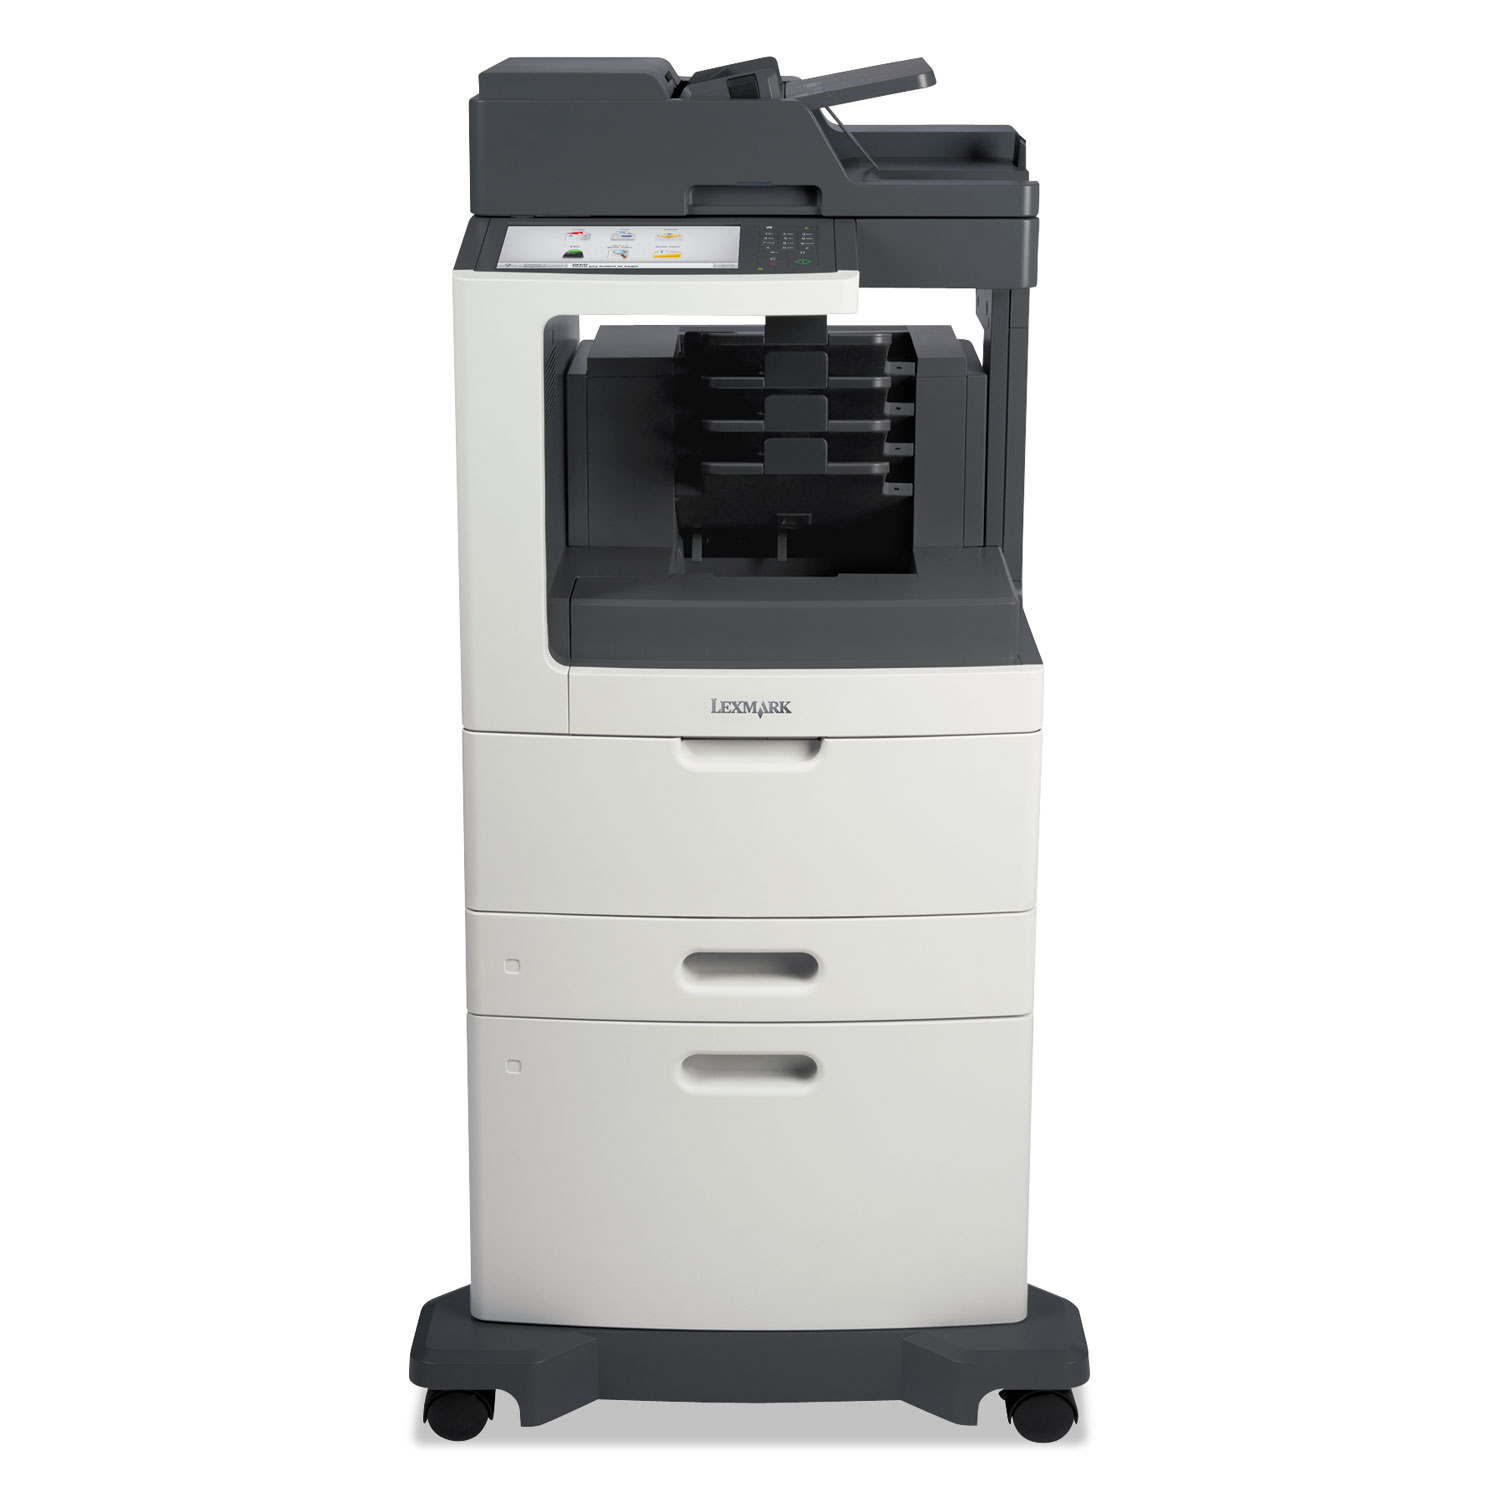 MX810dxme Multifunction Laser Printer, Copy/Fax/Print/Scan